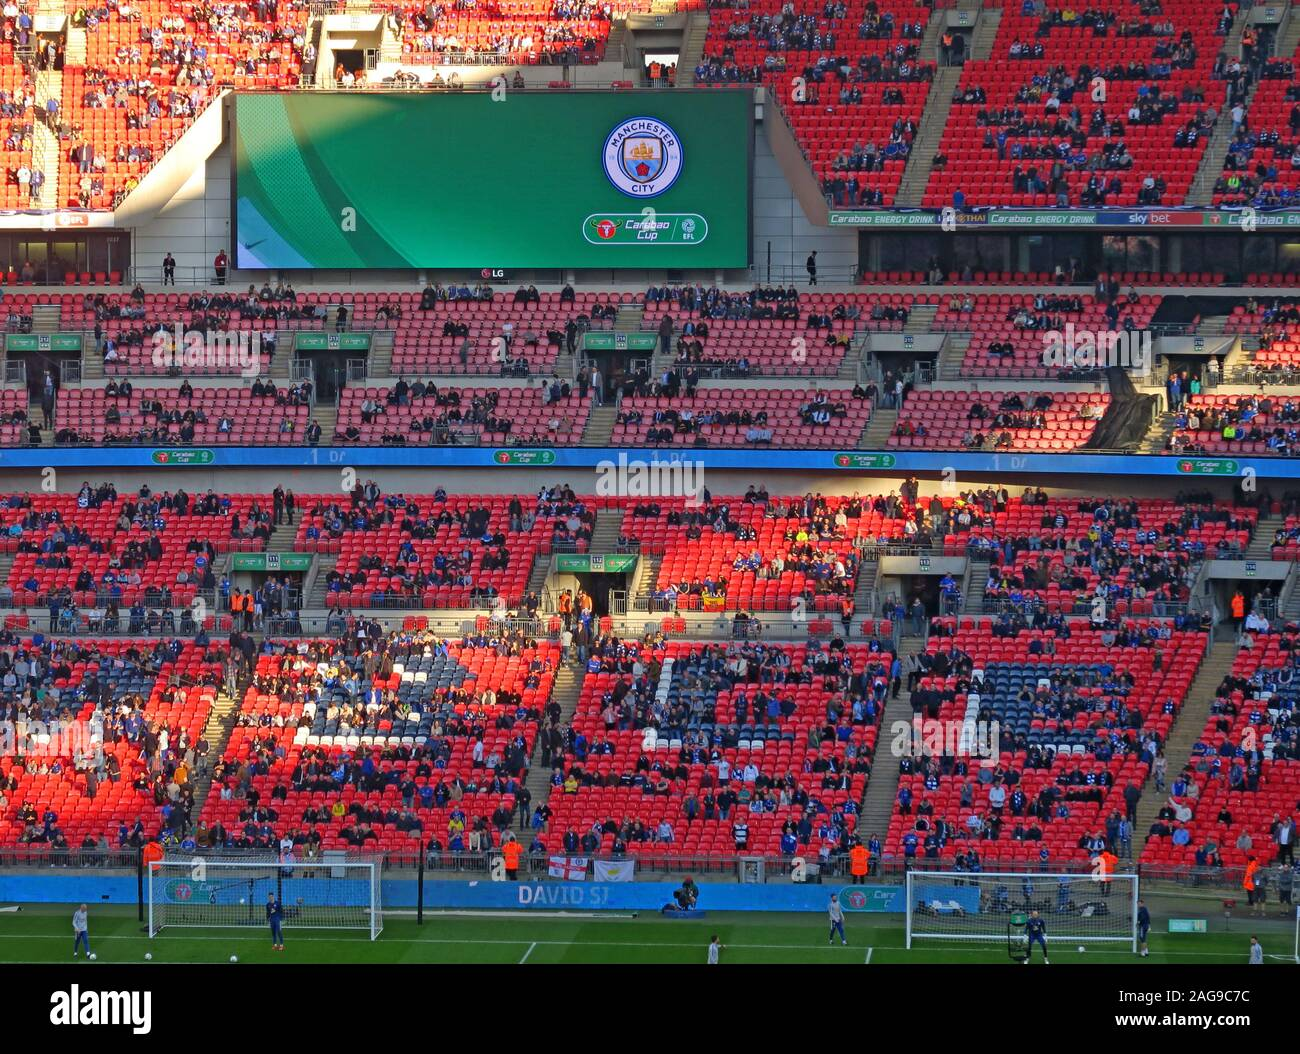 Dieses Stockfoto: MCFC, Manchester City, Manchester City Football Club vs Chelsea, Carabao Cup Finale 24/02/2019 Wembley Stadion, London, England, UK-Feb 2019 - 2AG9C7